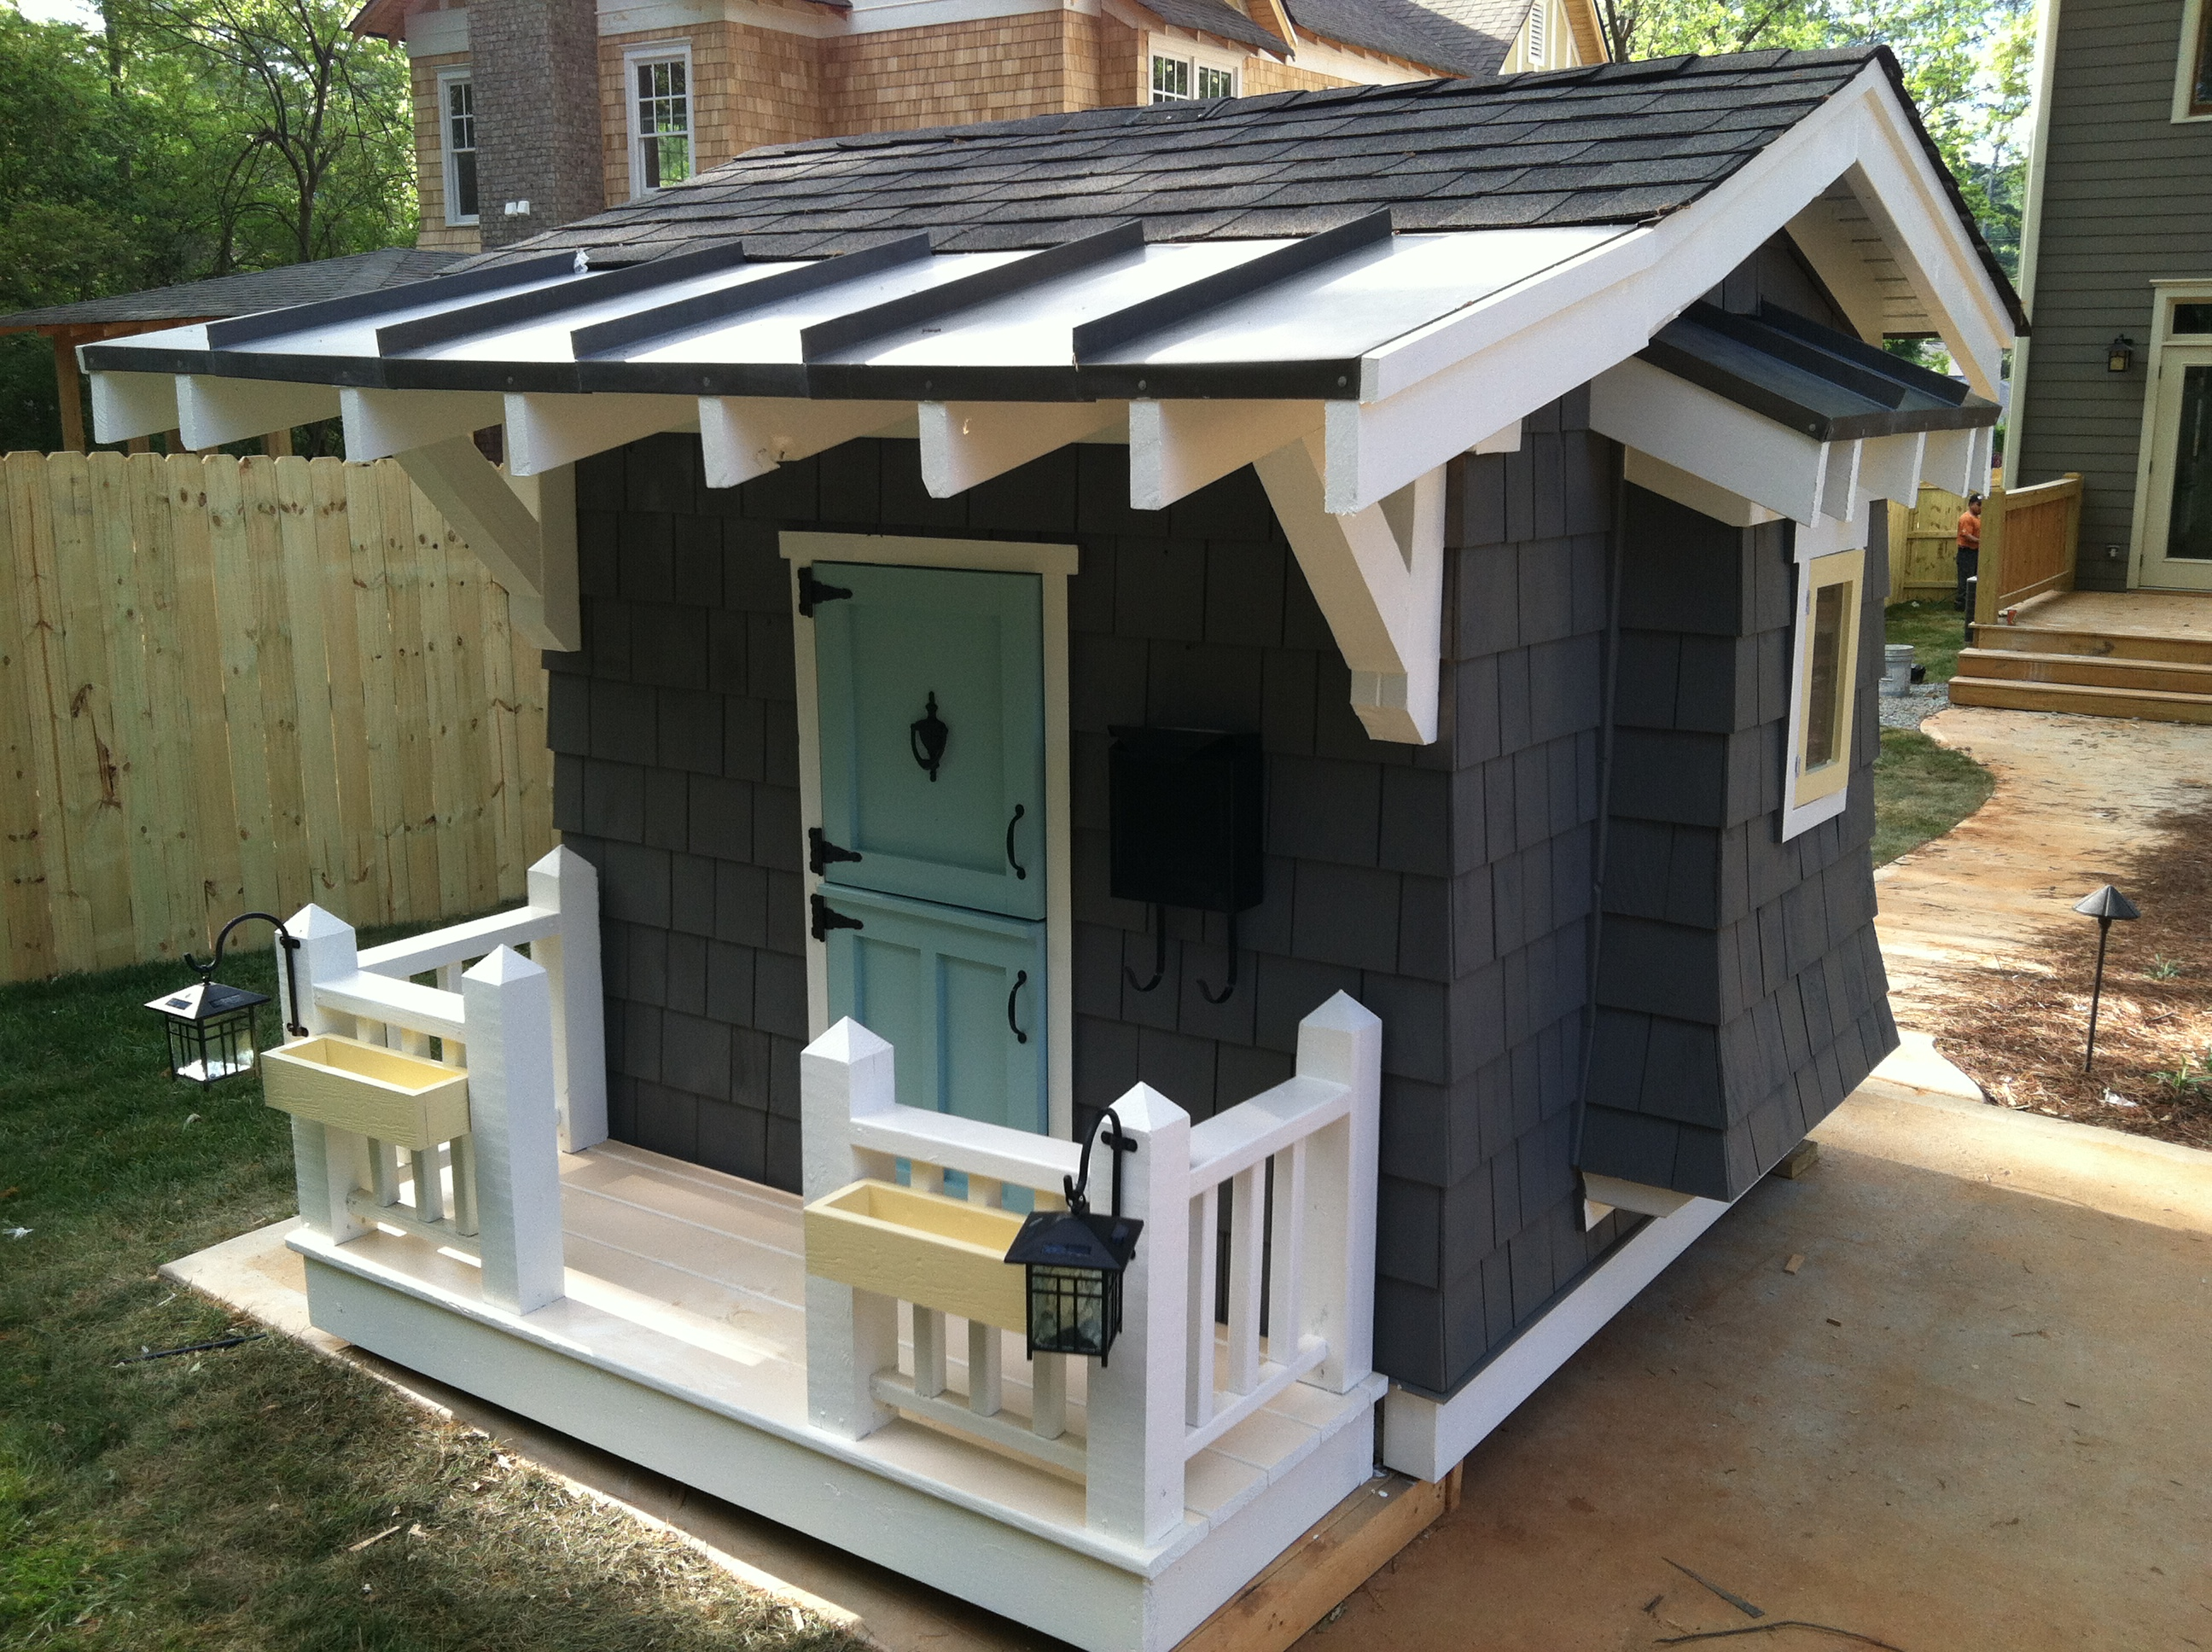 Who wants a playhouse the decatur minute for How to make a playhouse out of wood